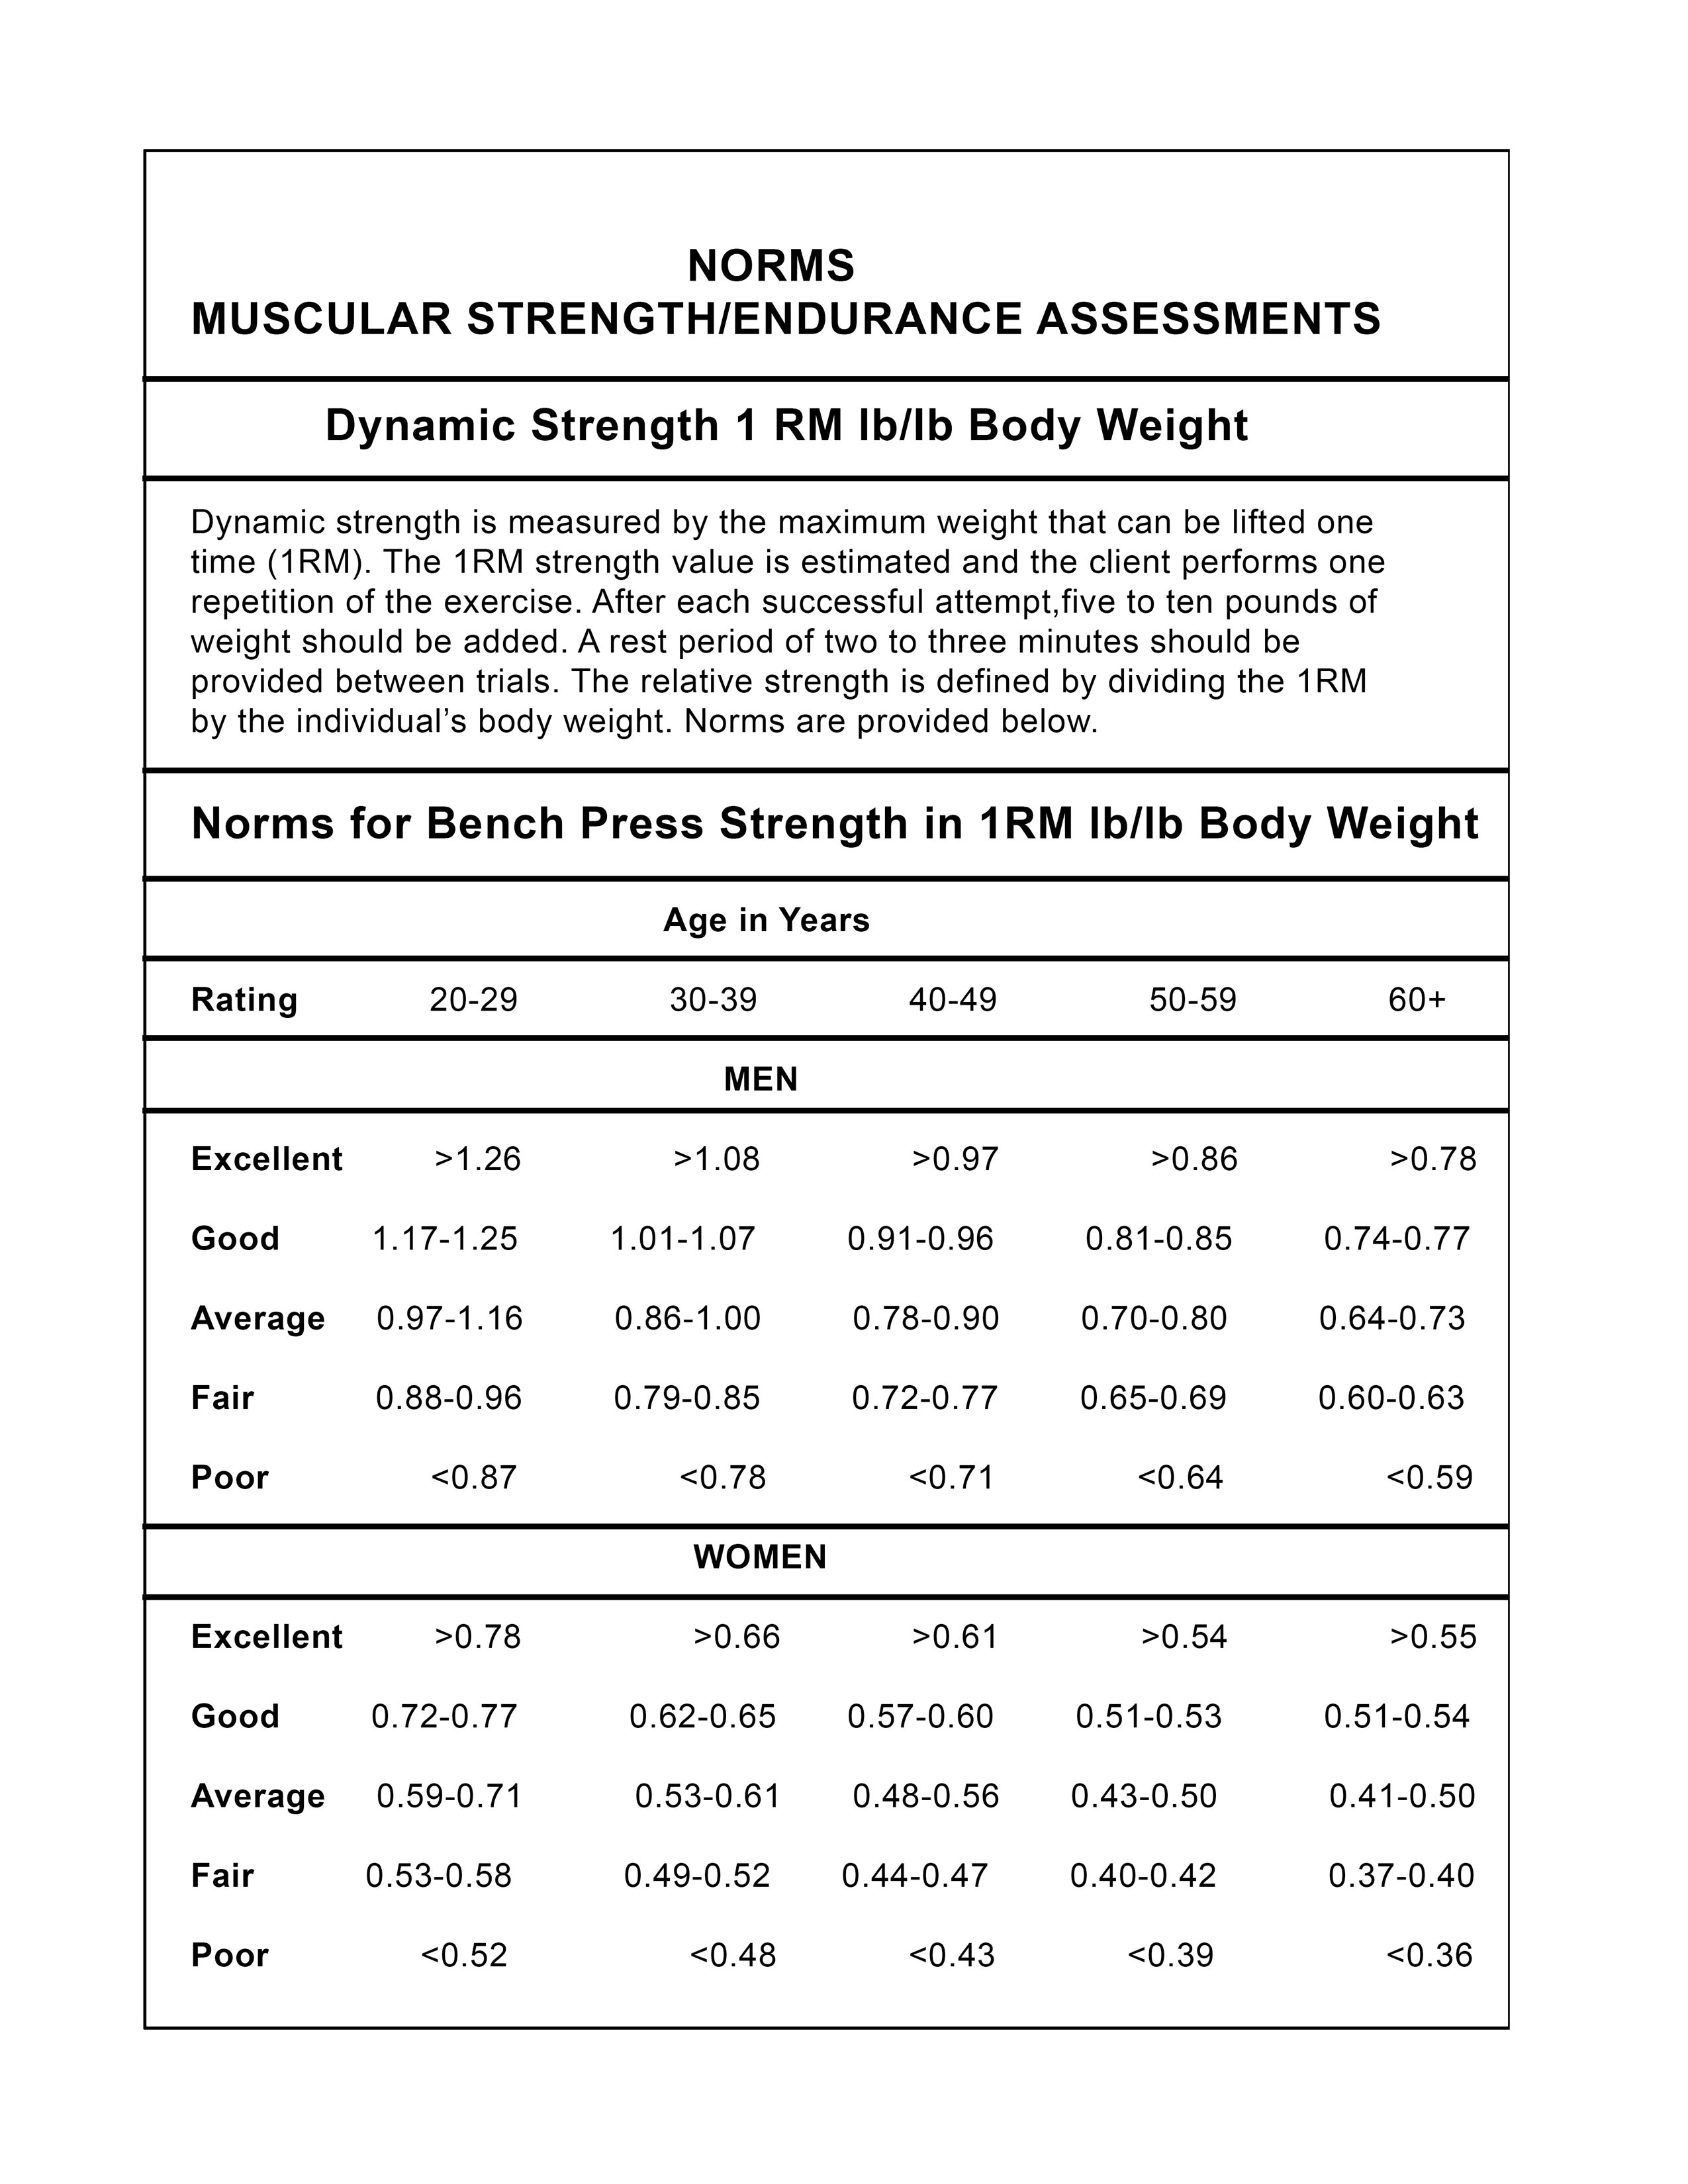 Printable bench press test norms chart for men and women.